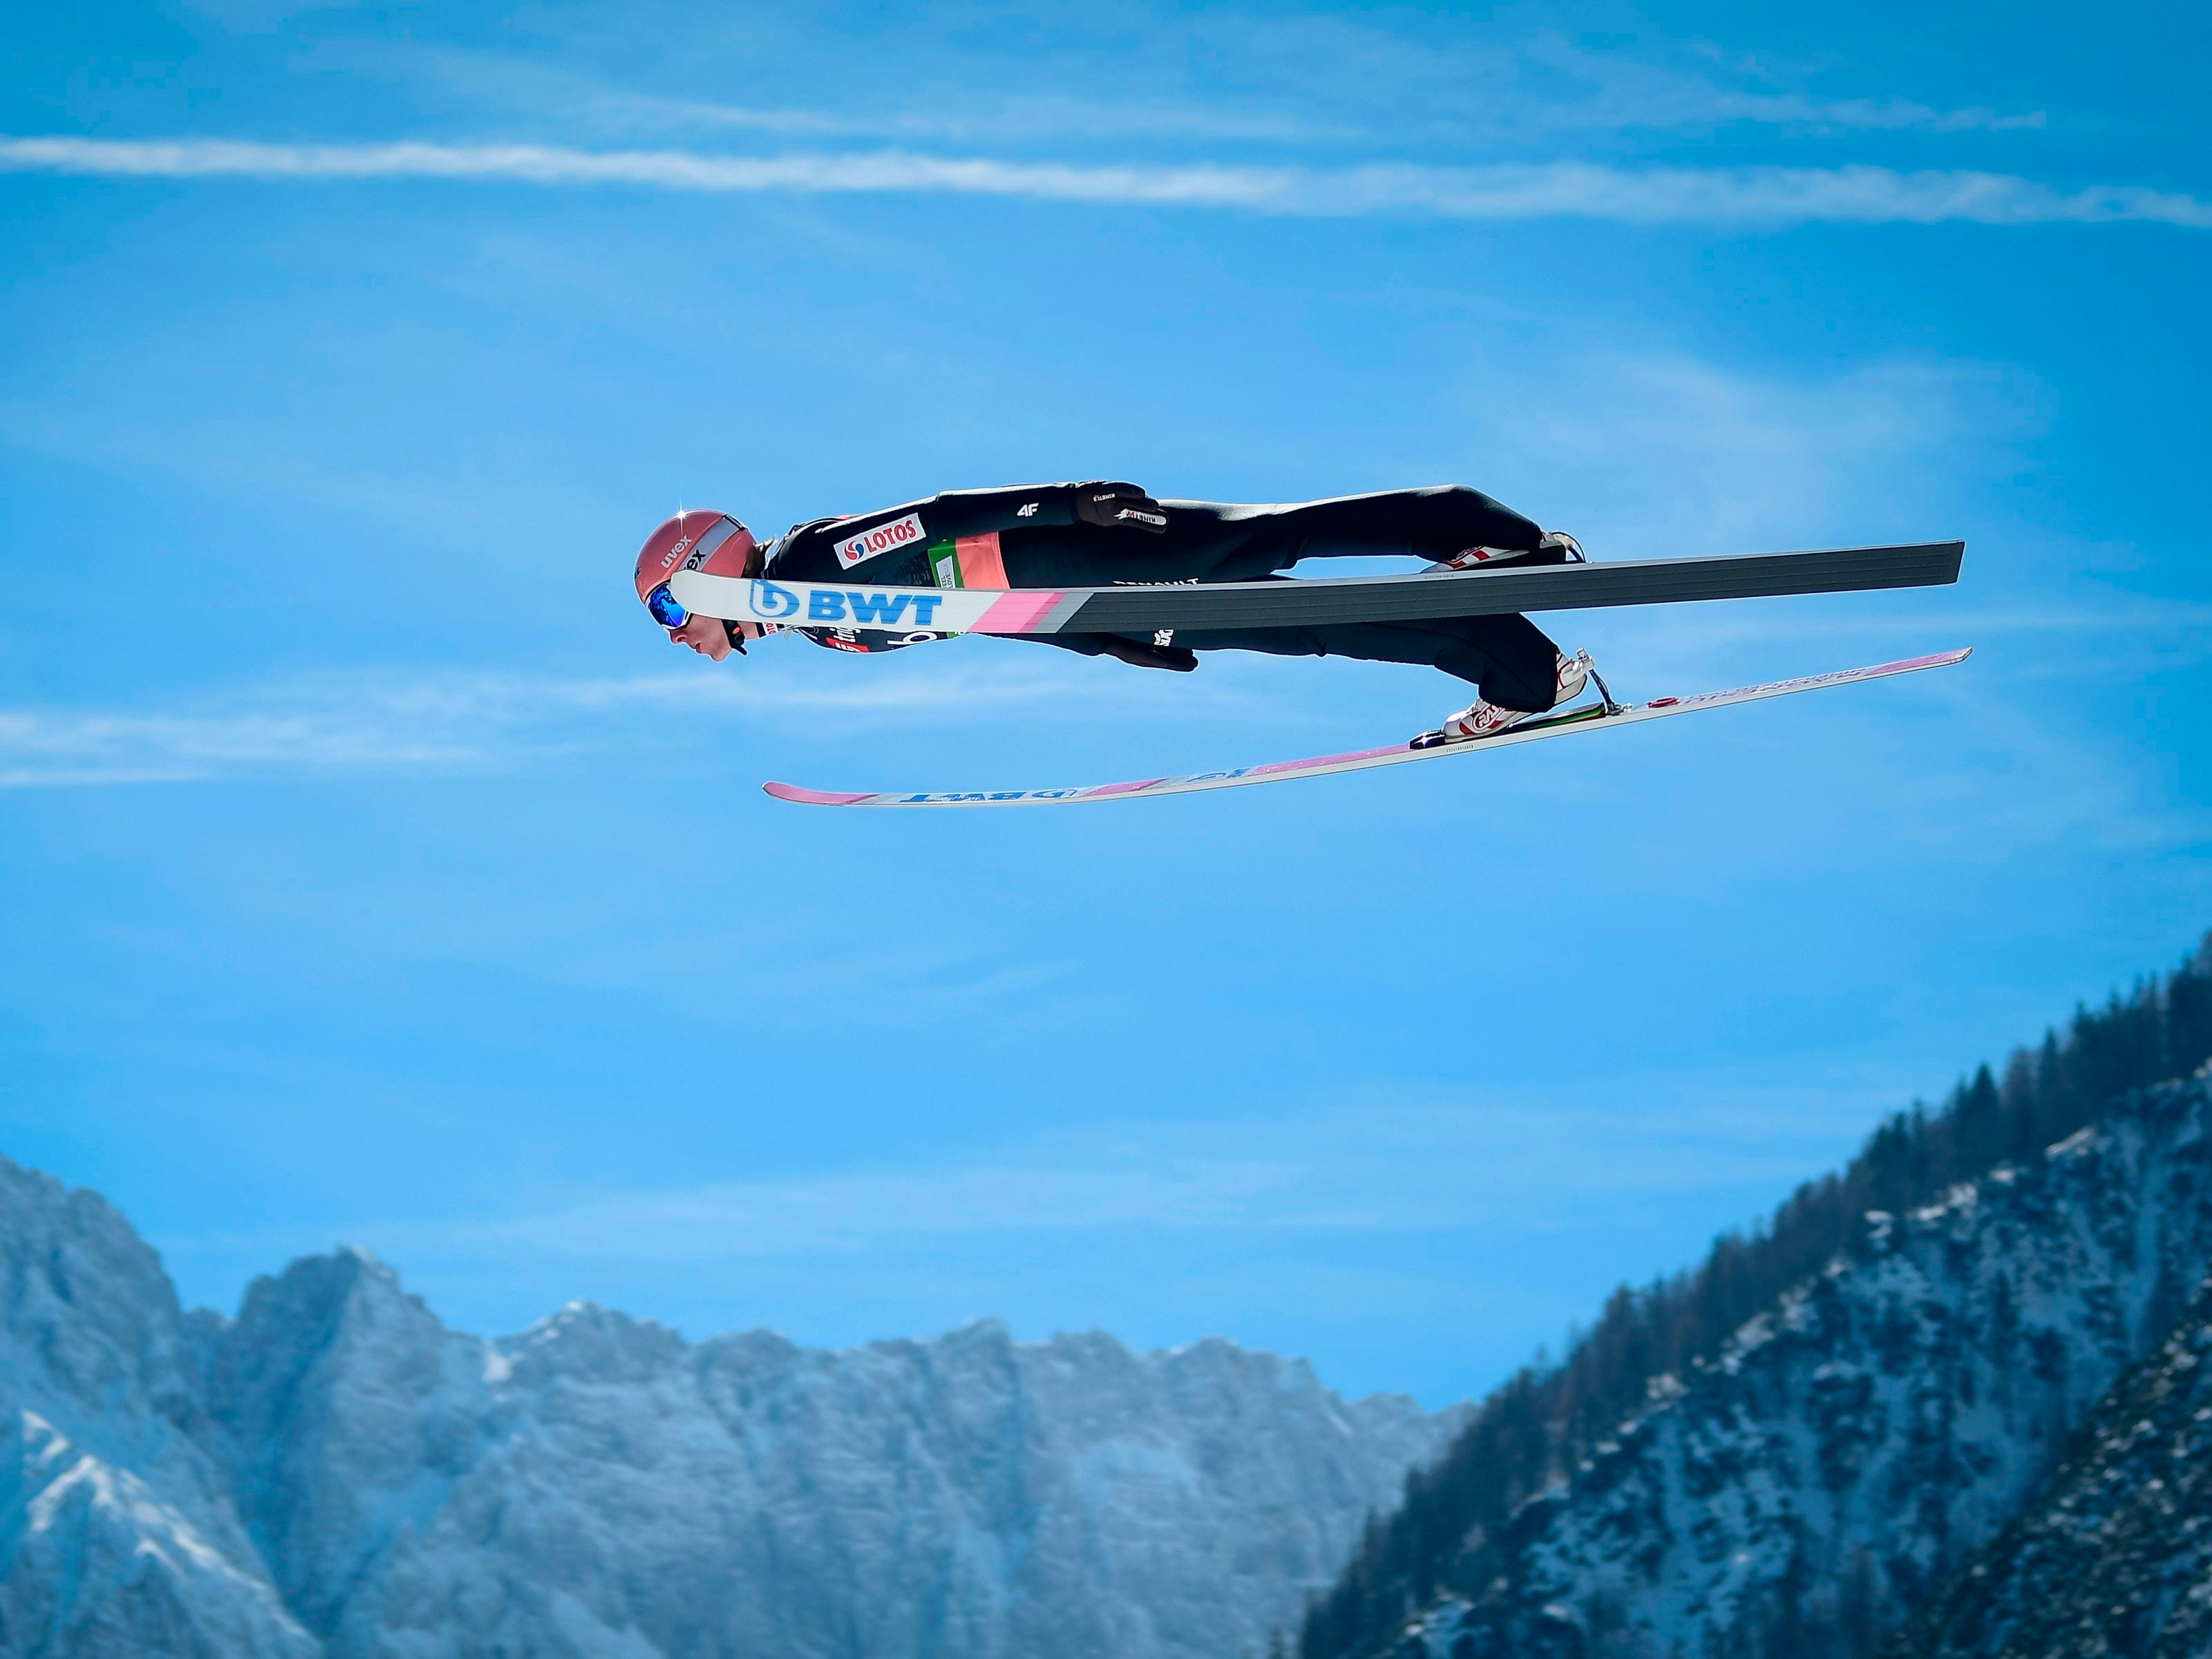 Dawid Kubacki of Poland  competes during the qualifying round of the FIS Ski Jumping World Cup Men's Flying Hill Individual competition in Planica, Slovenia, on March 21, 2019.